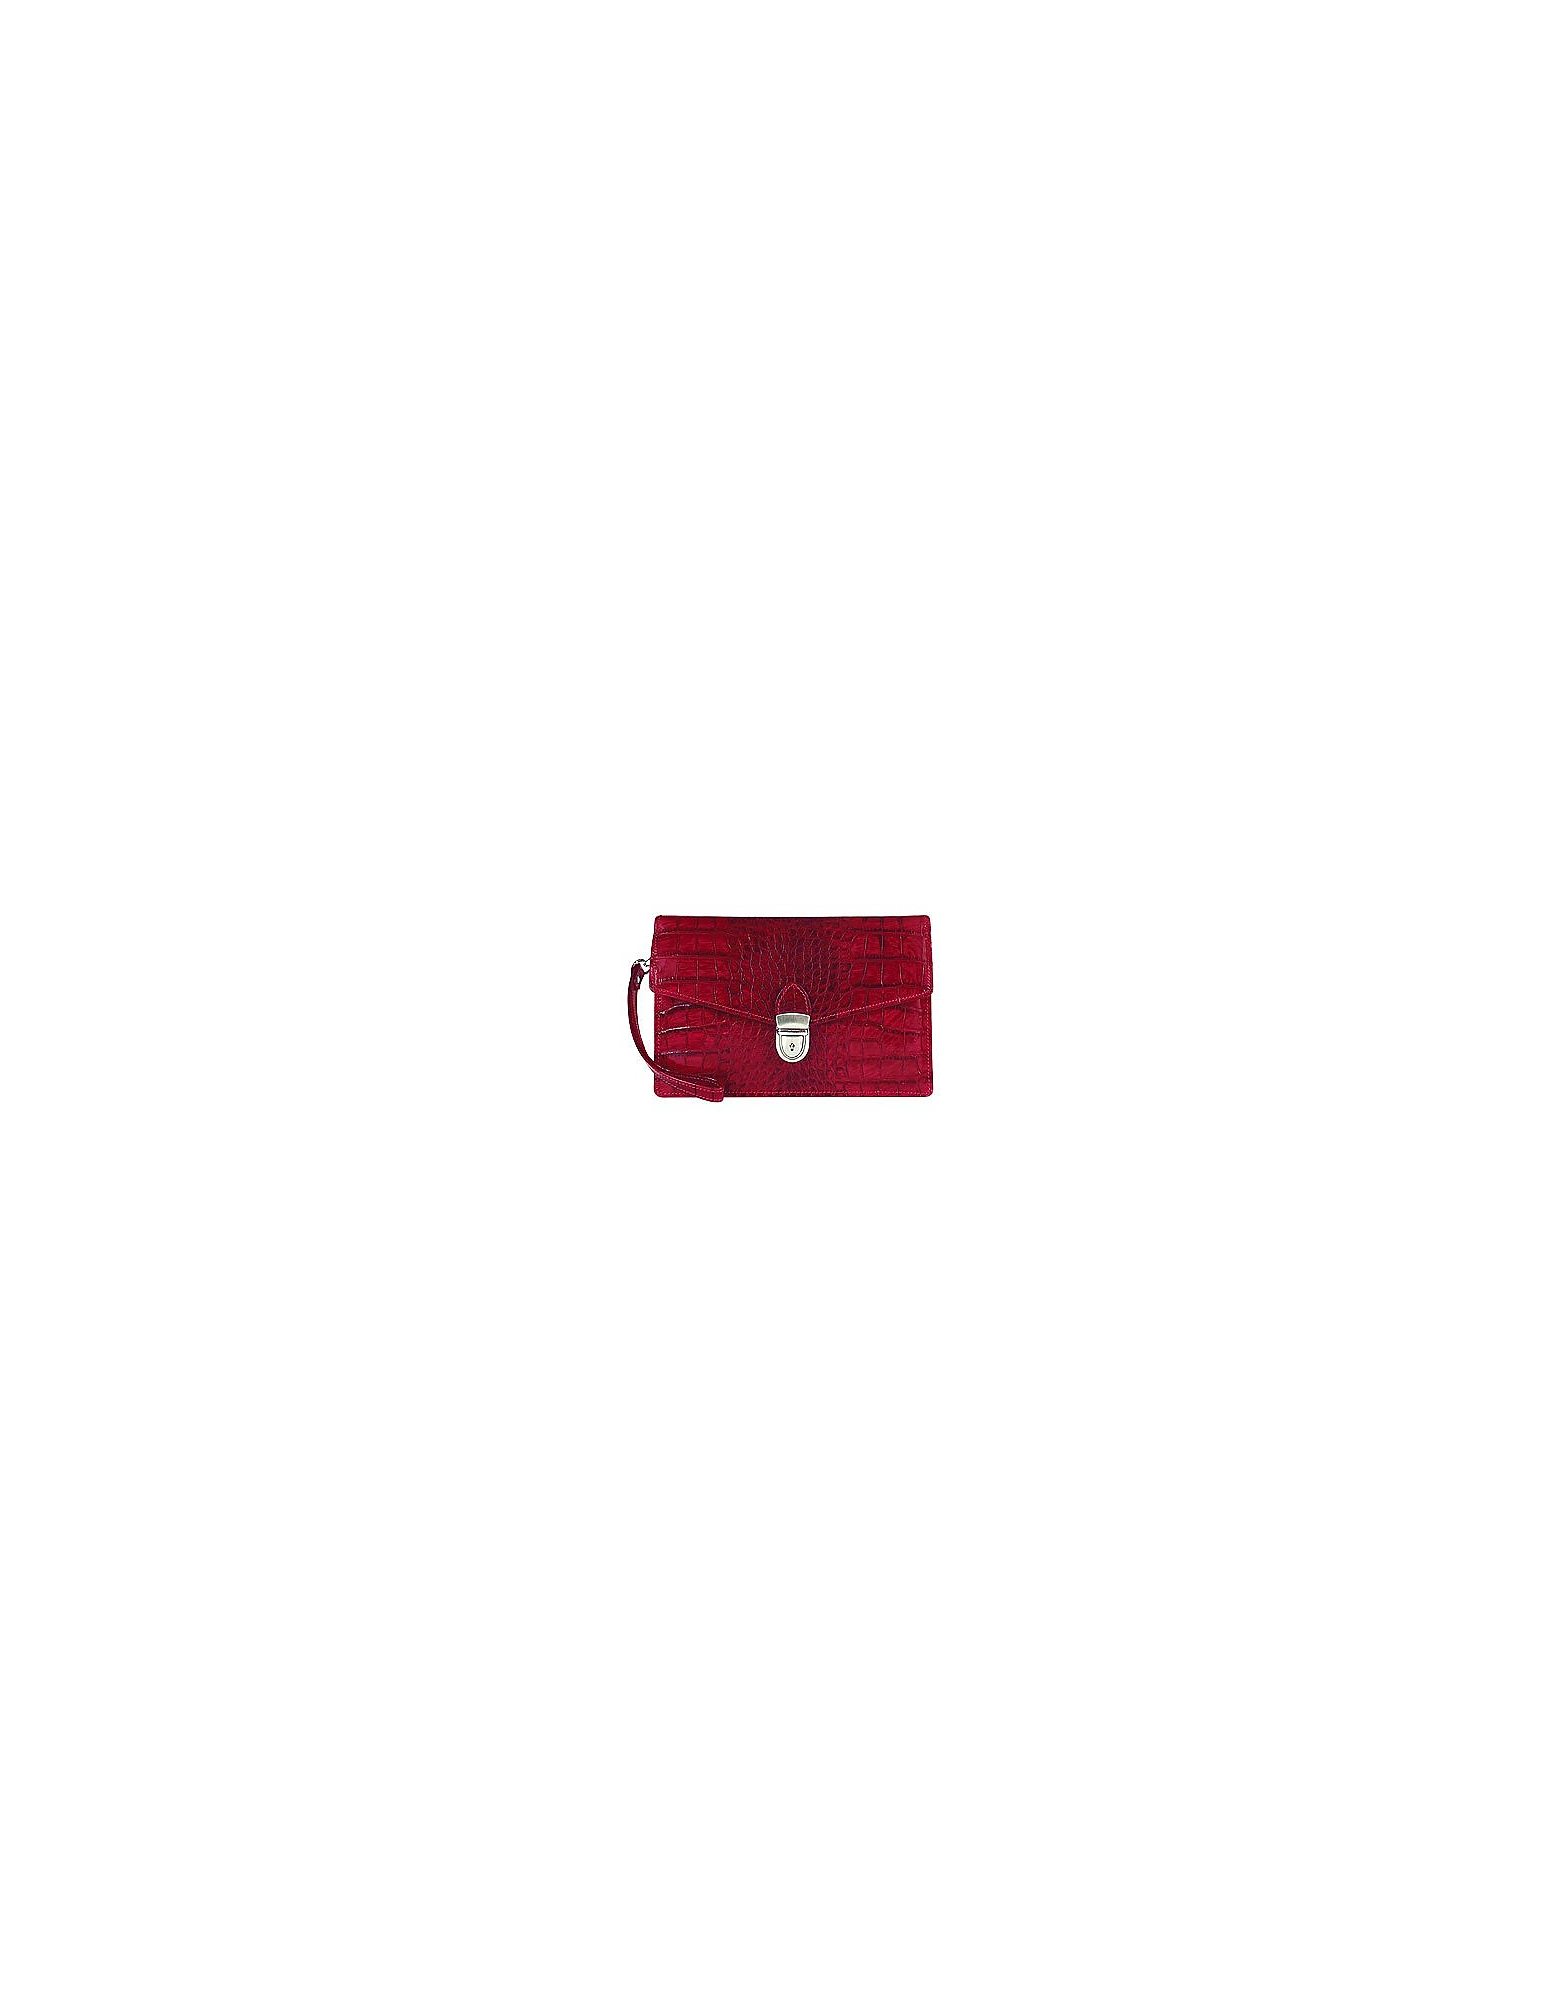 L.A.P.A. Handbags, Cherry Croco-embossed Leather Clutch